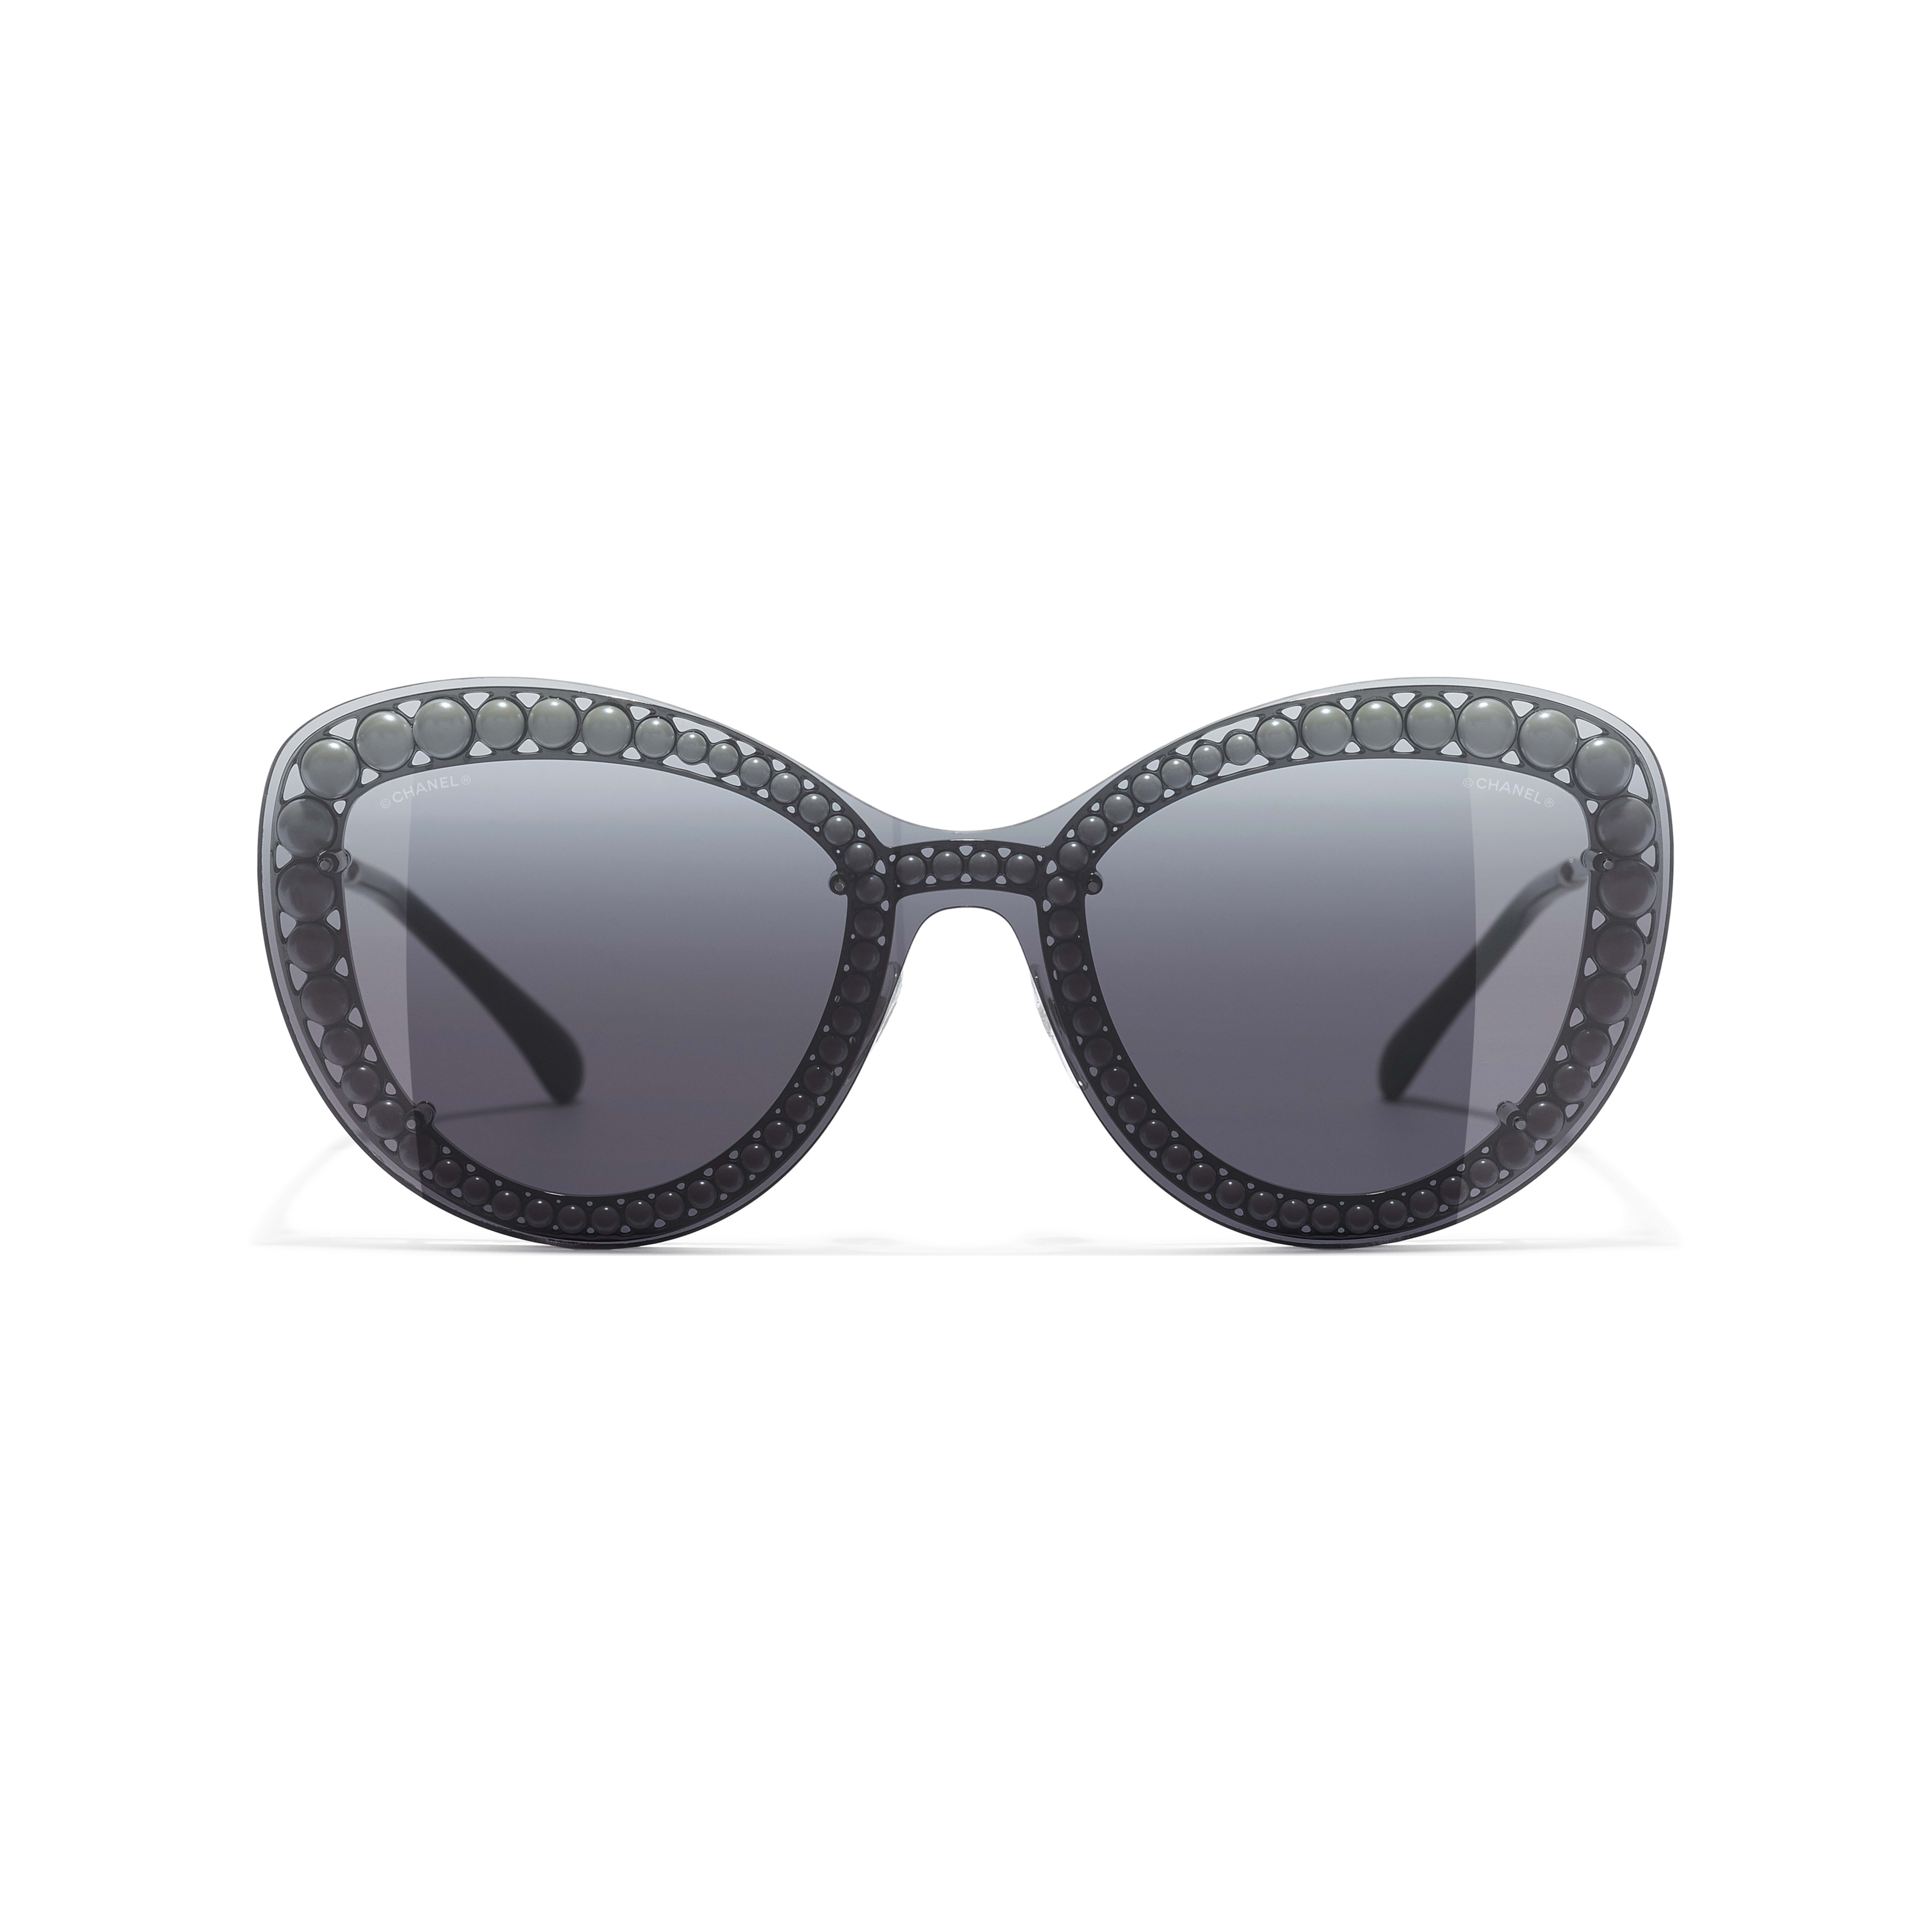 Butterfly Sunglasses Metal & Imitation Pearls Silver -                                                    view 2 - see full sized version